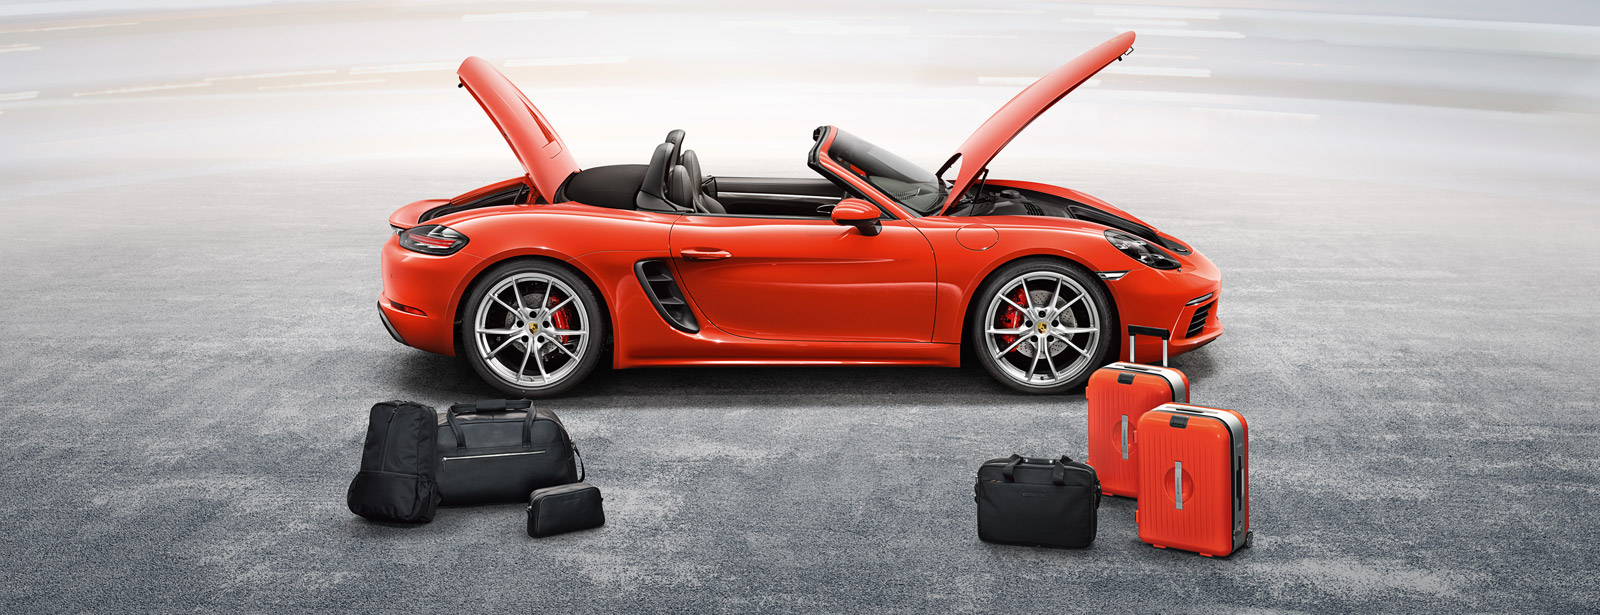 Porsche 718 Cayman S Luggage Compartments And Storage Solutions Porsche Middle East